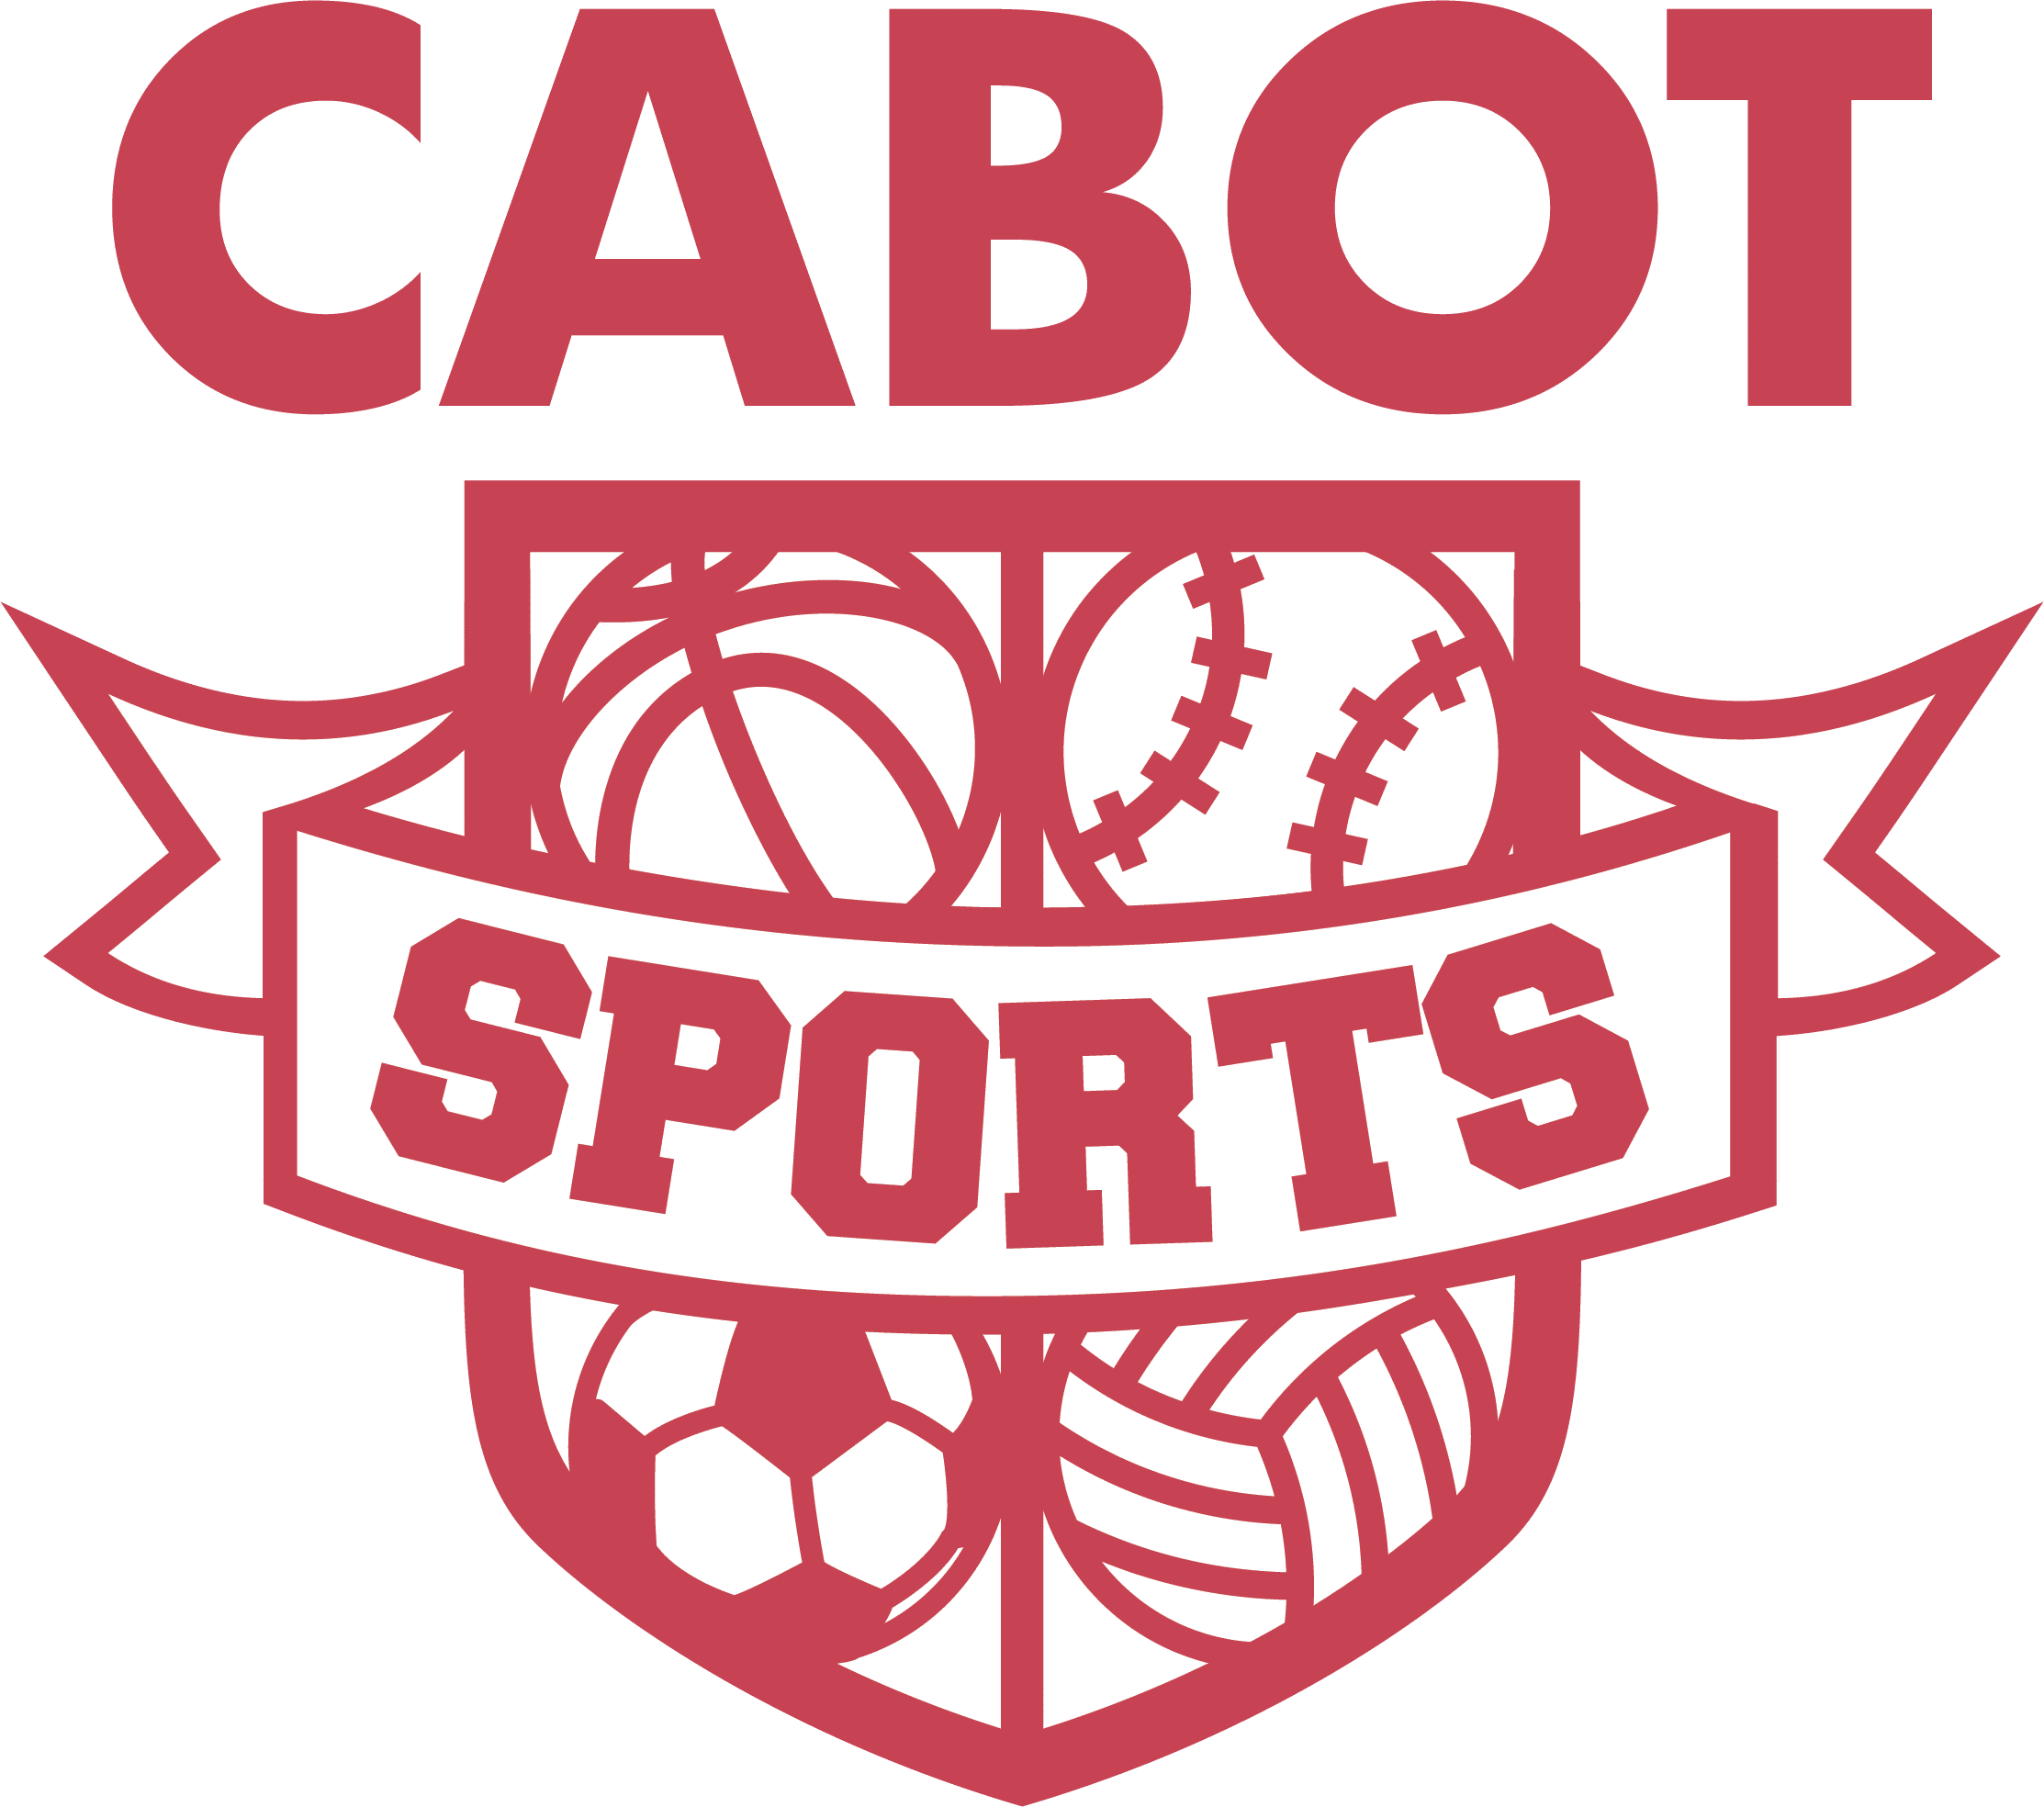 Cabot Sports